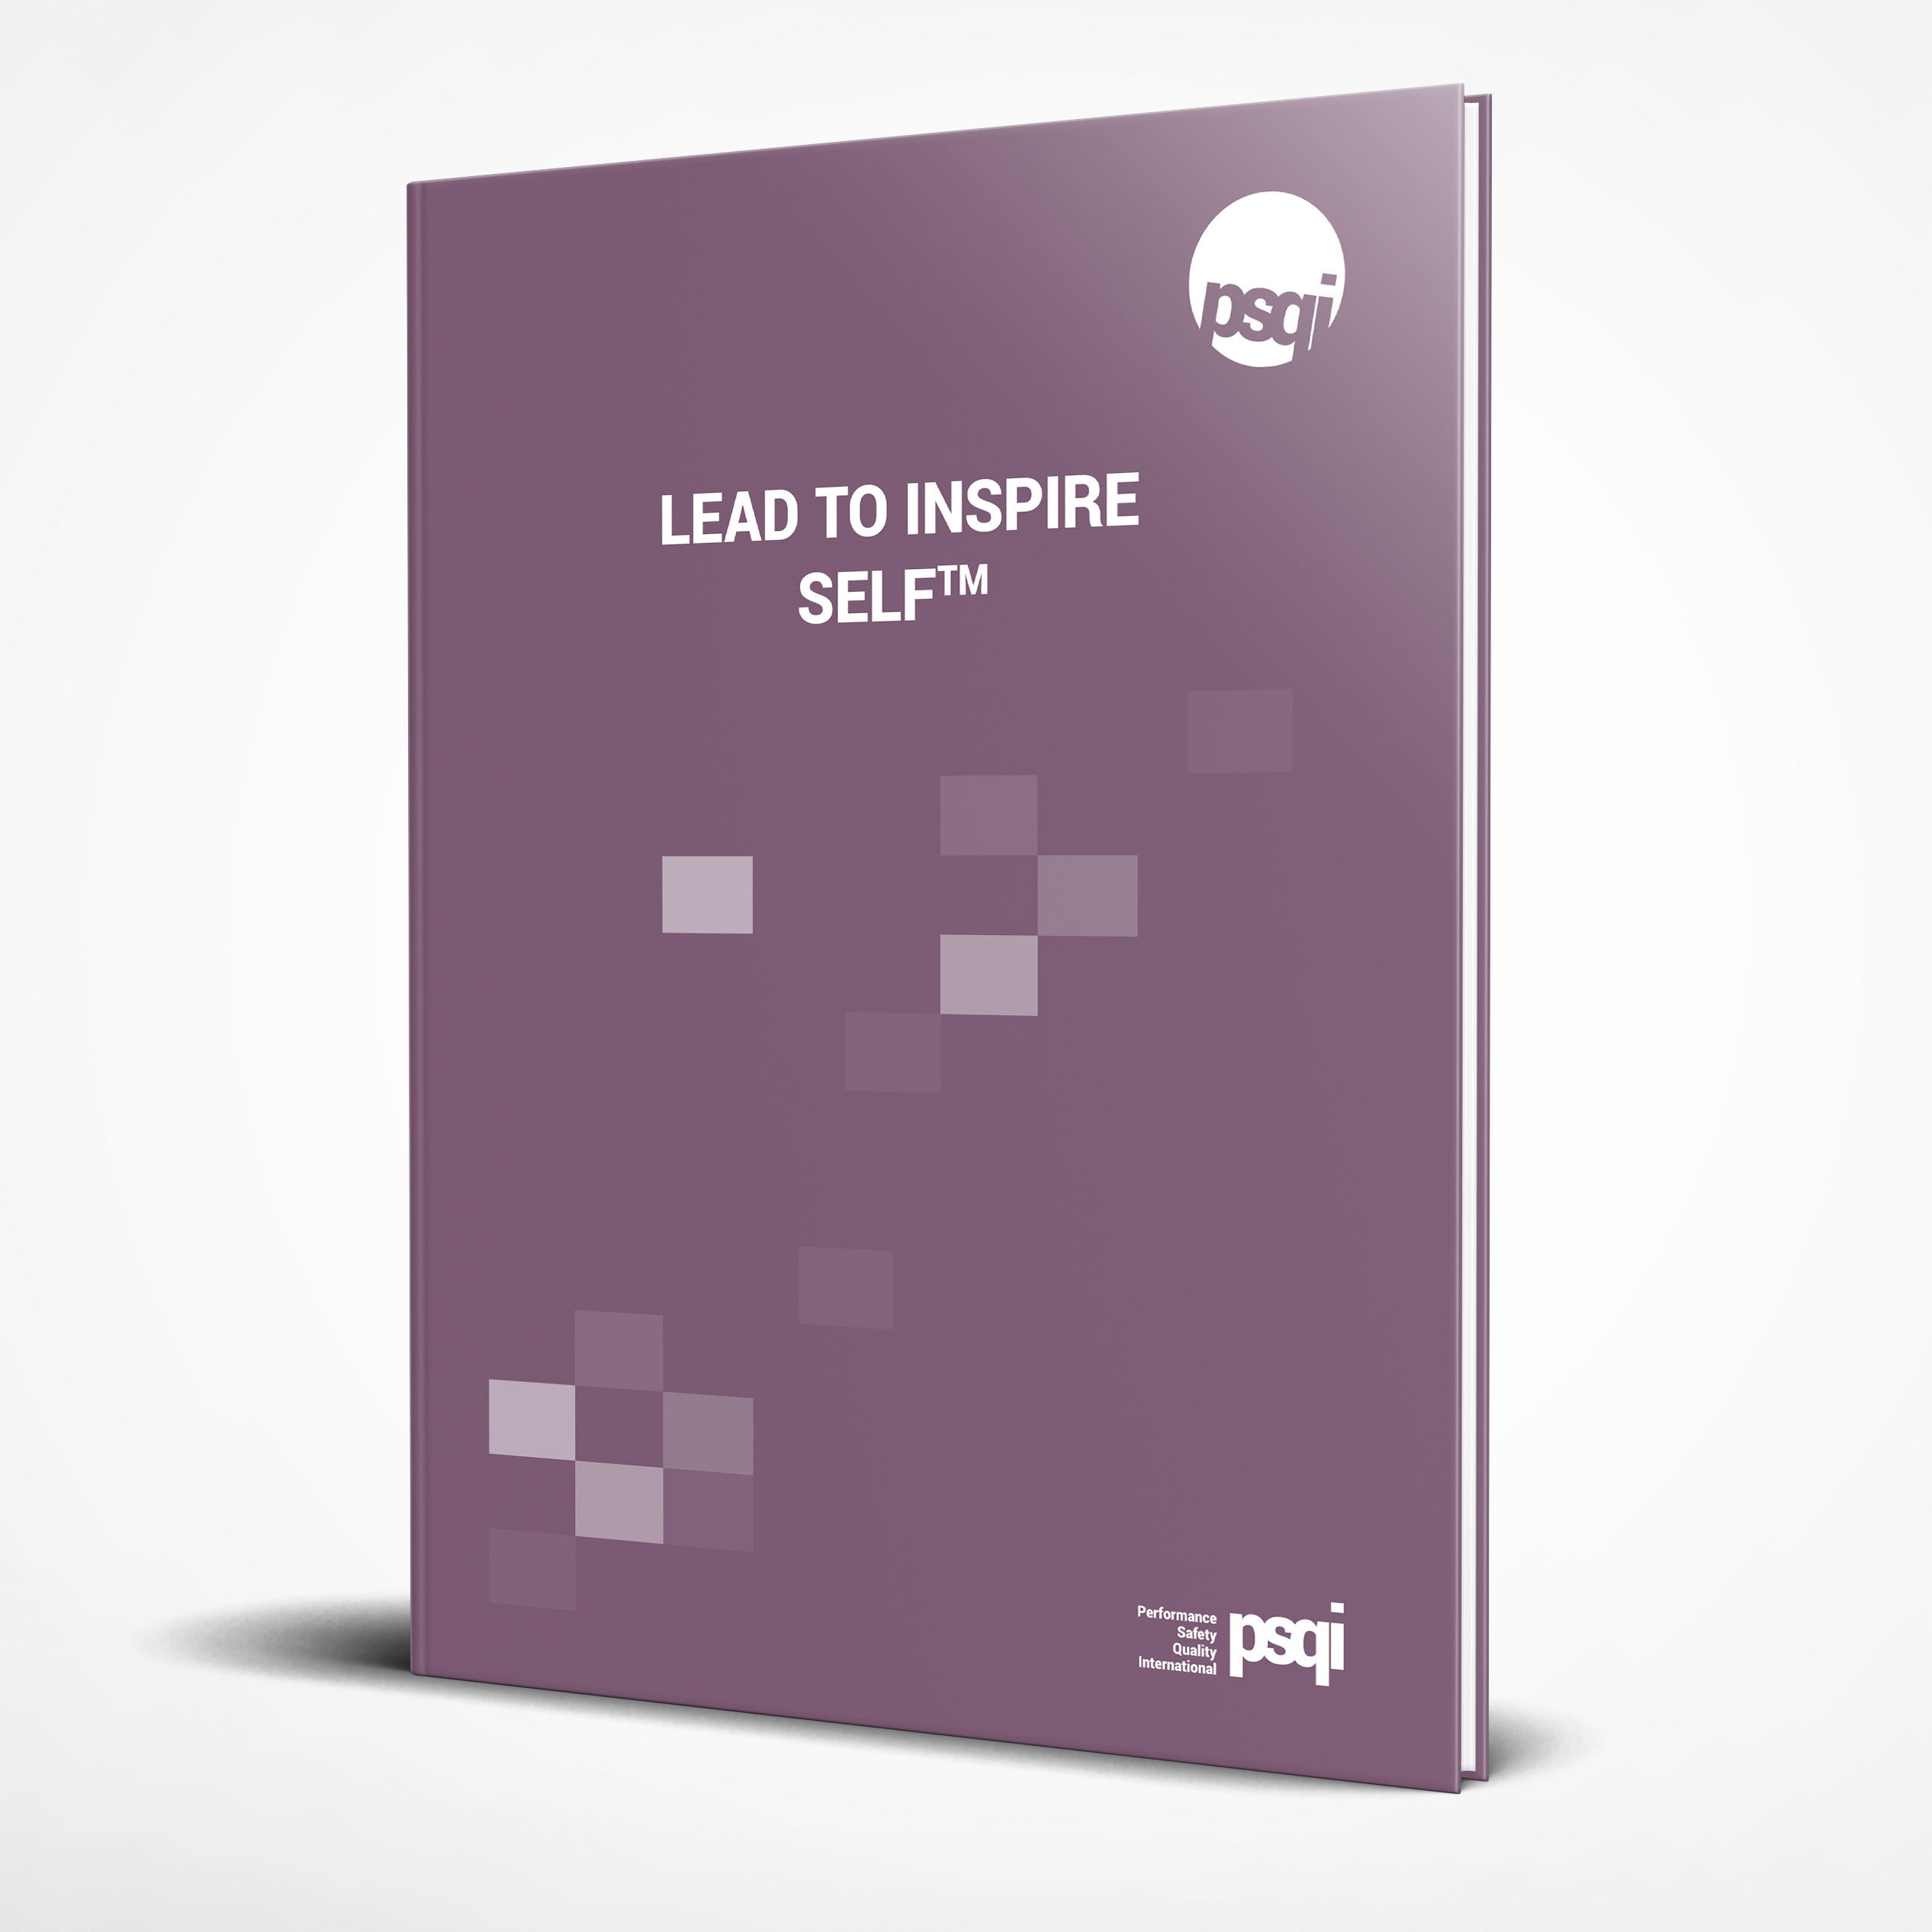 Lead_to_inspire_self-cover